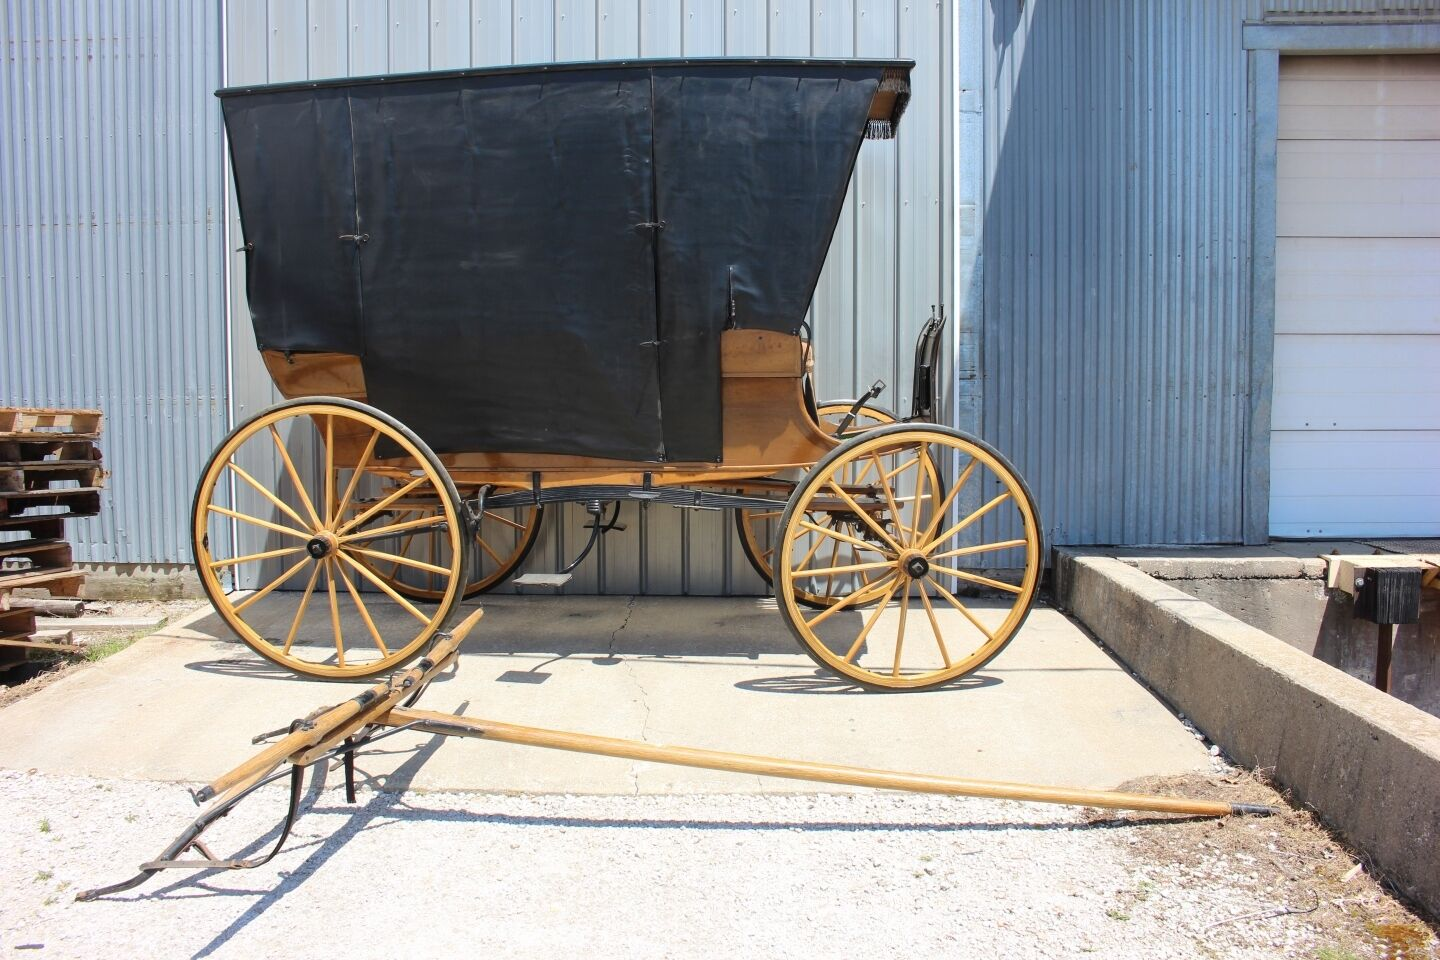 3 seat surrey with top and side curtains team pole wheels on rubber horse drawn